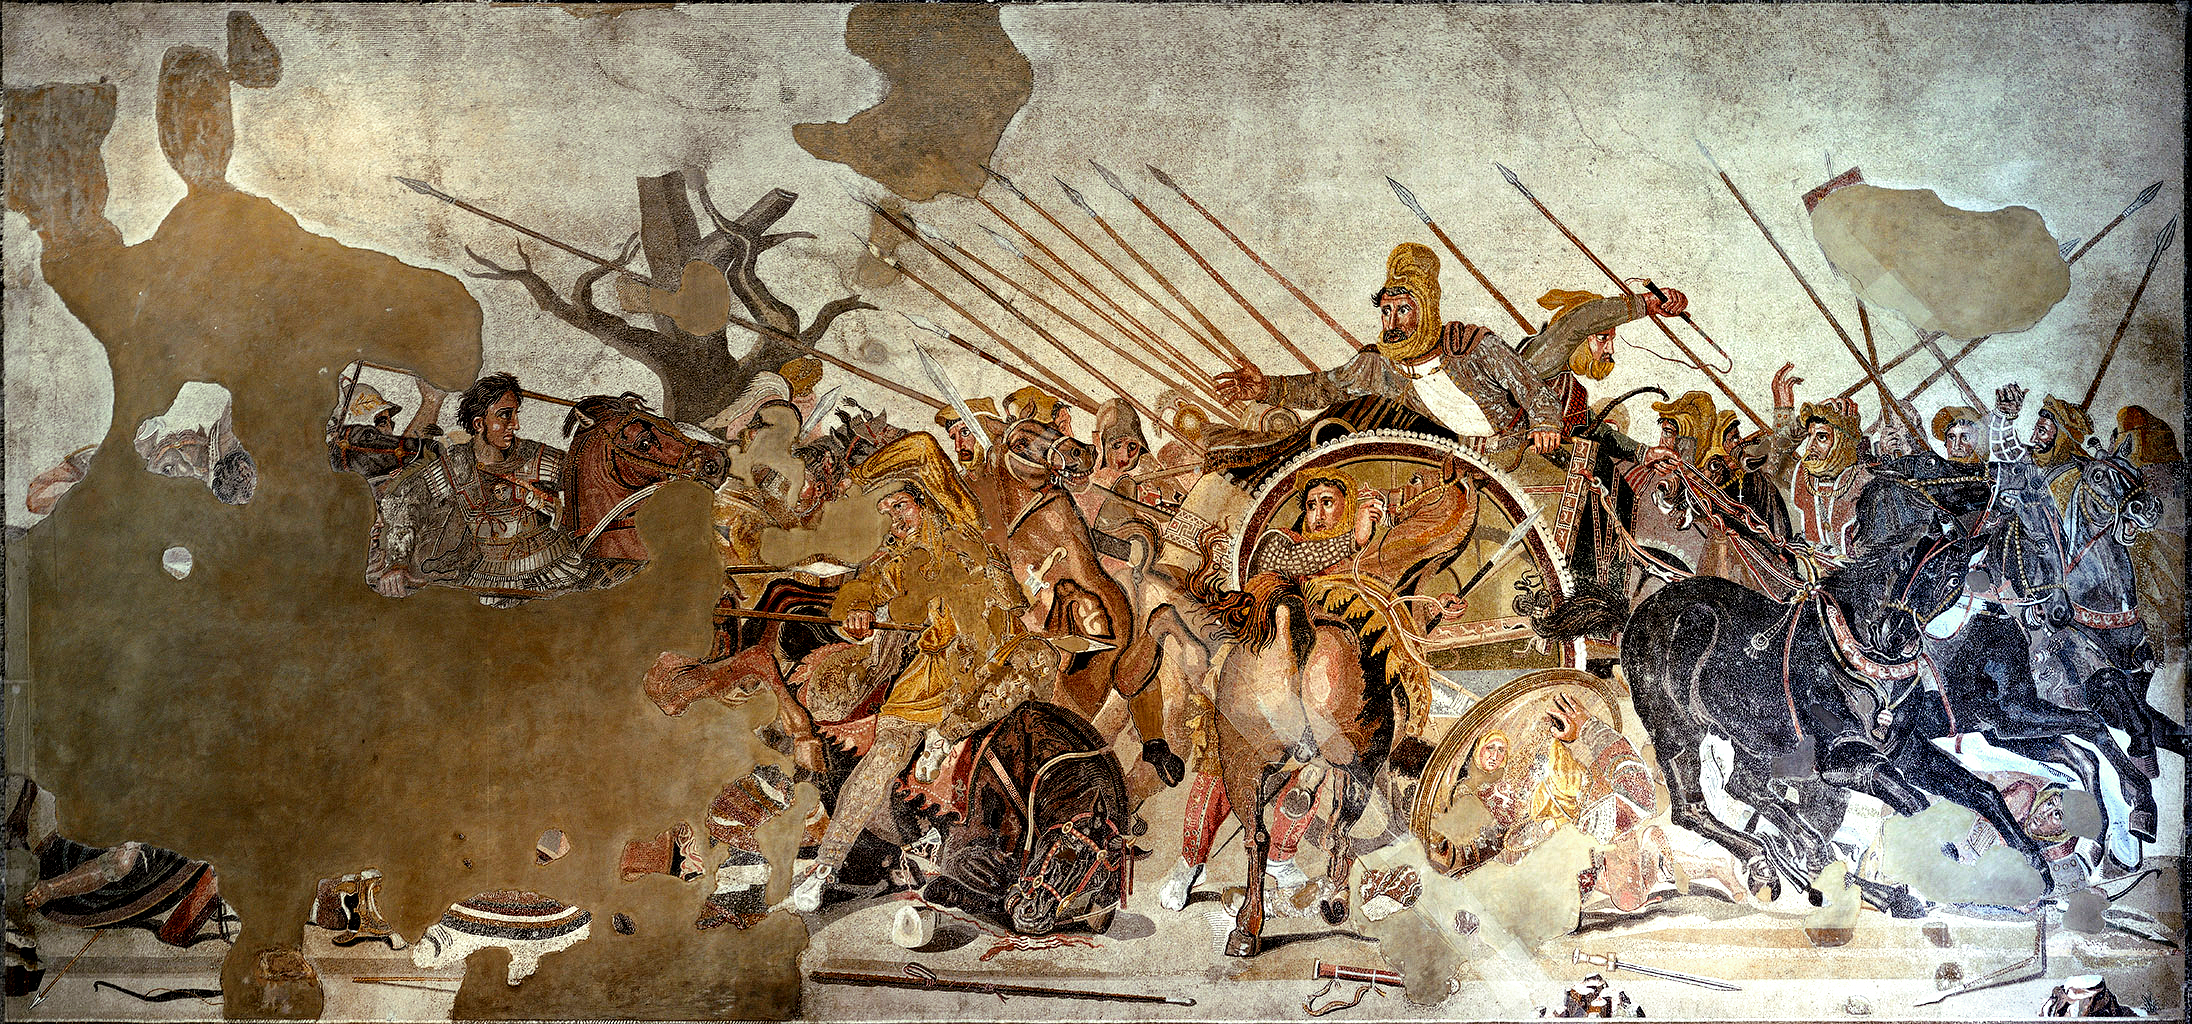 Mosaic showing the battle of Issus, circa 100 BC, Pompeii, Roman empire, perhaps after an earlier Greek painting of Philoxenus of Eretria (4th-3rd century BC)